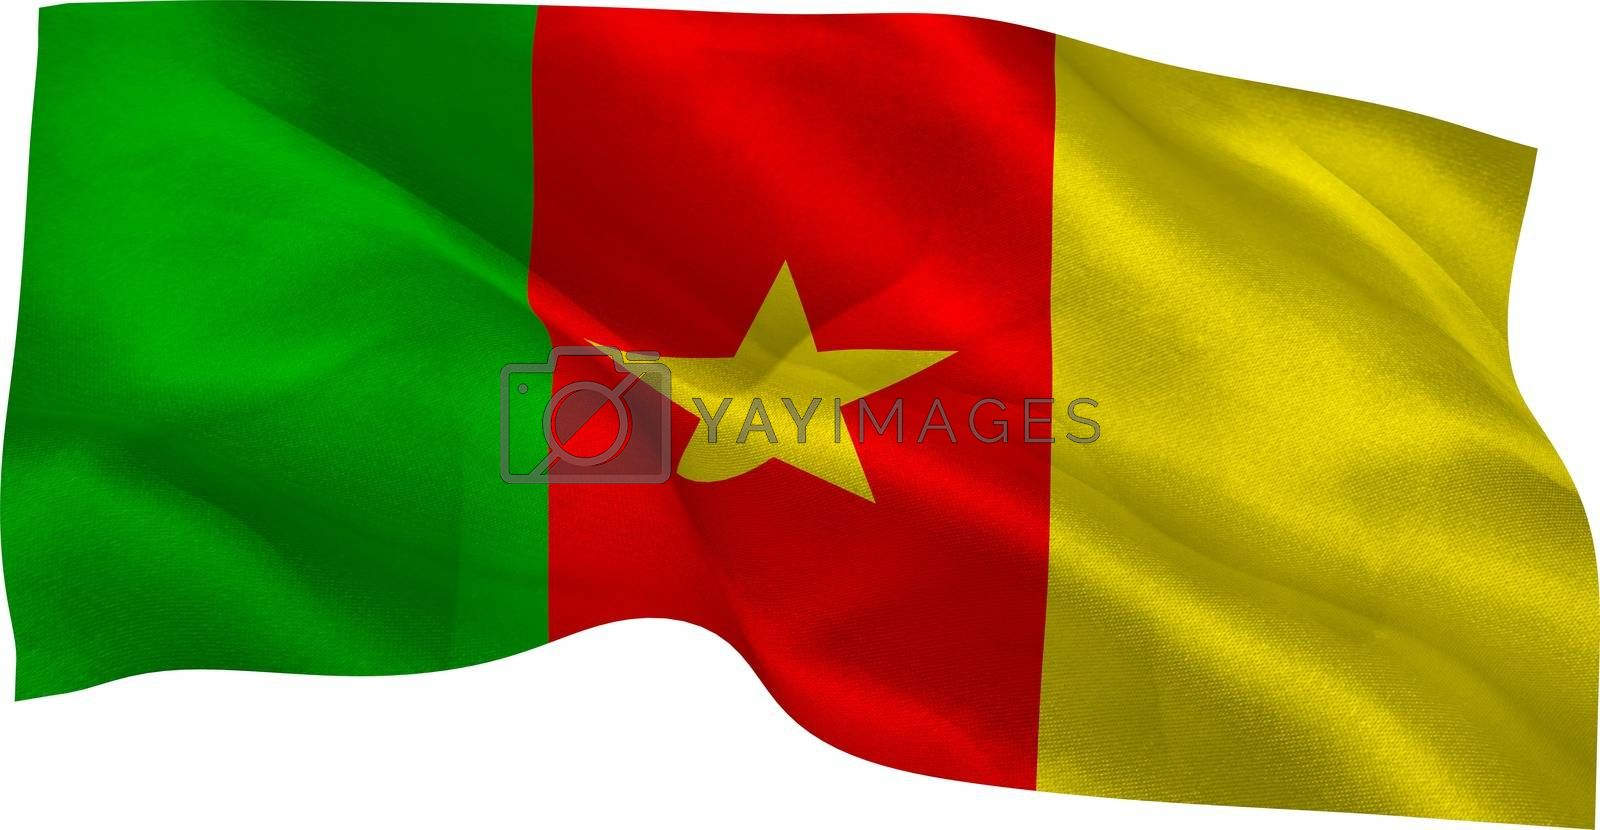 Royalty free image of Digitally generated cameroon national flag by Wavebreakmedia